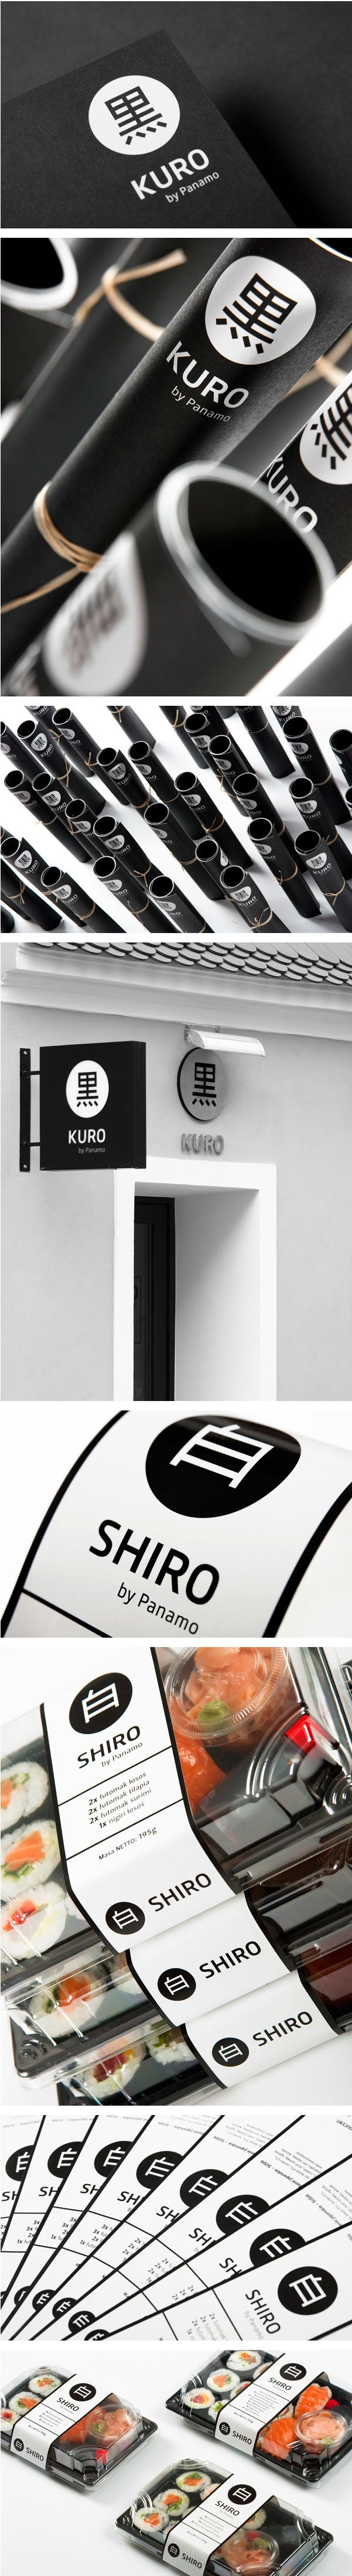 Kuro & Shiro on Behance. It's sushi for lunch identity packaging branding PD